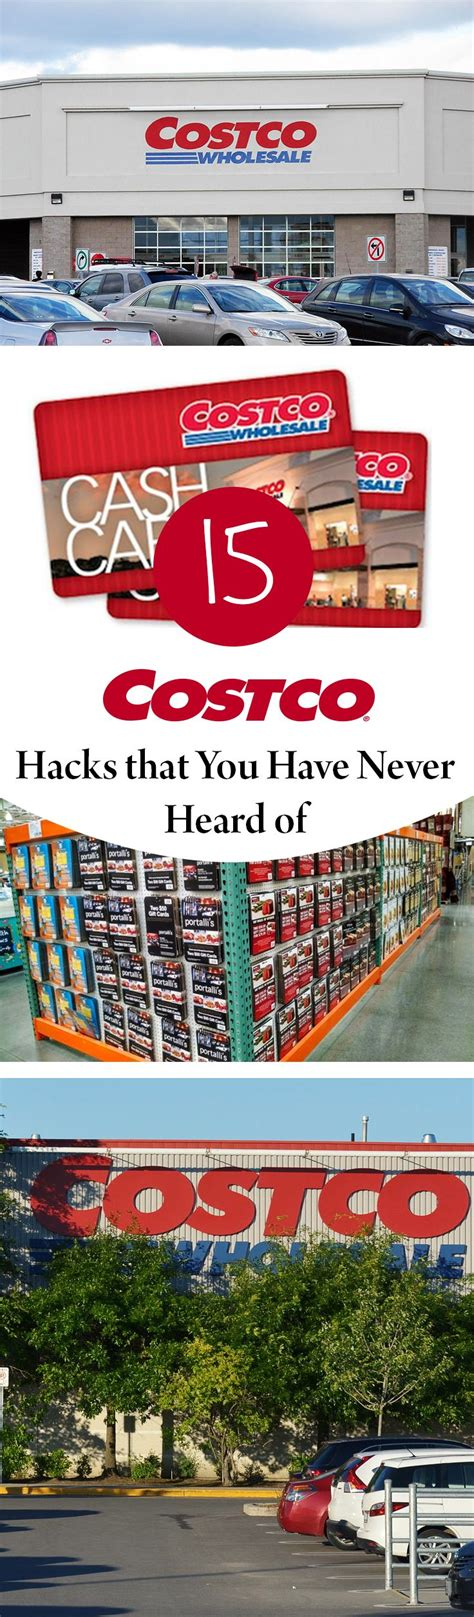 15 costco hacks that you never heard of page 5 of 16 wrapped in rust 76 best images about cake decorating pinterest dachshund cake portal cake and art